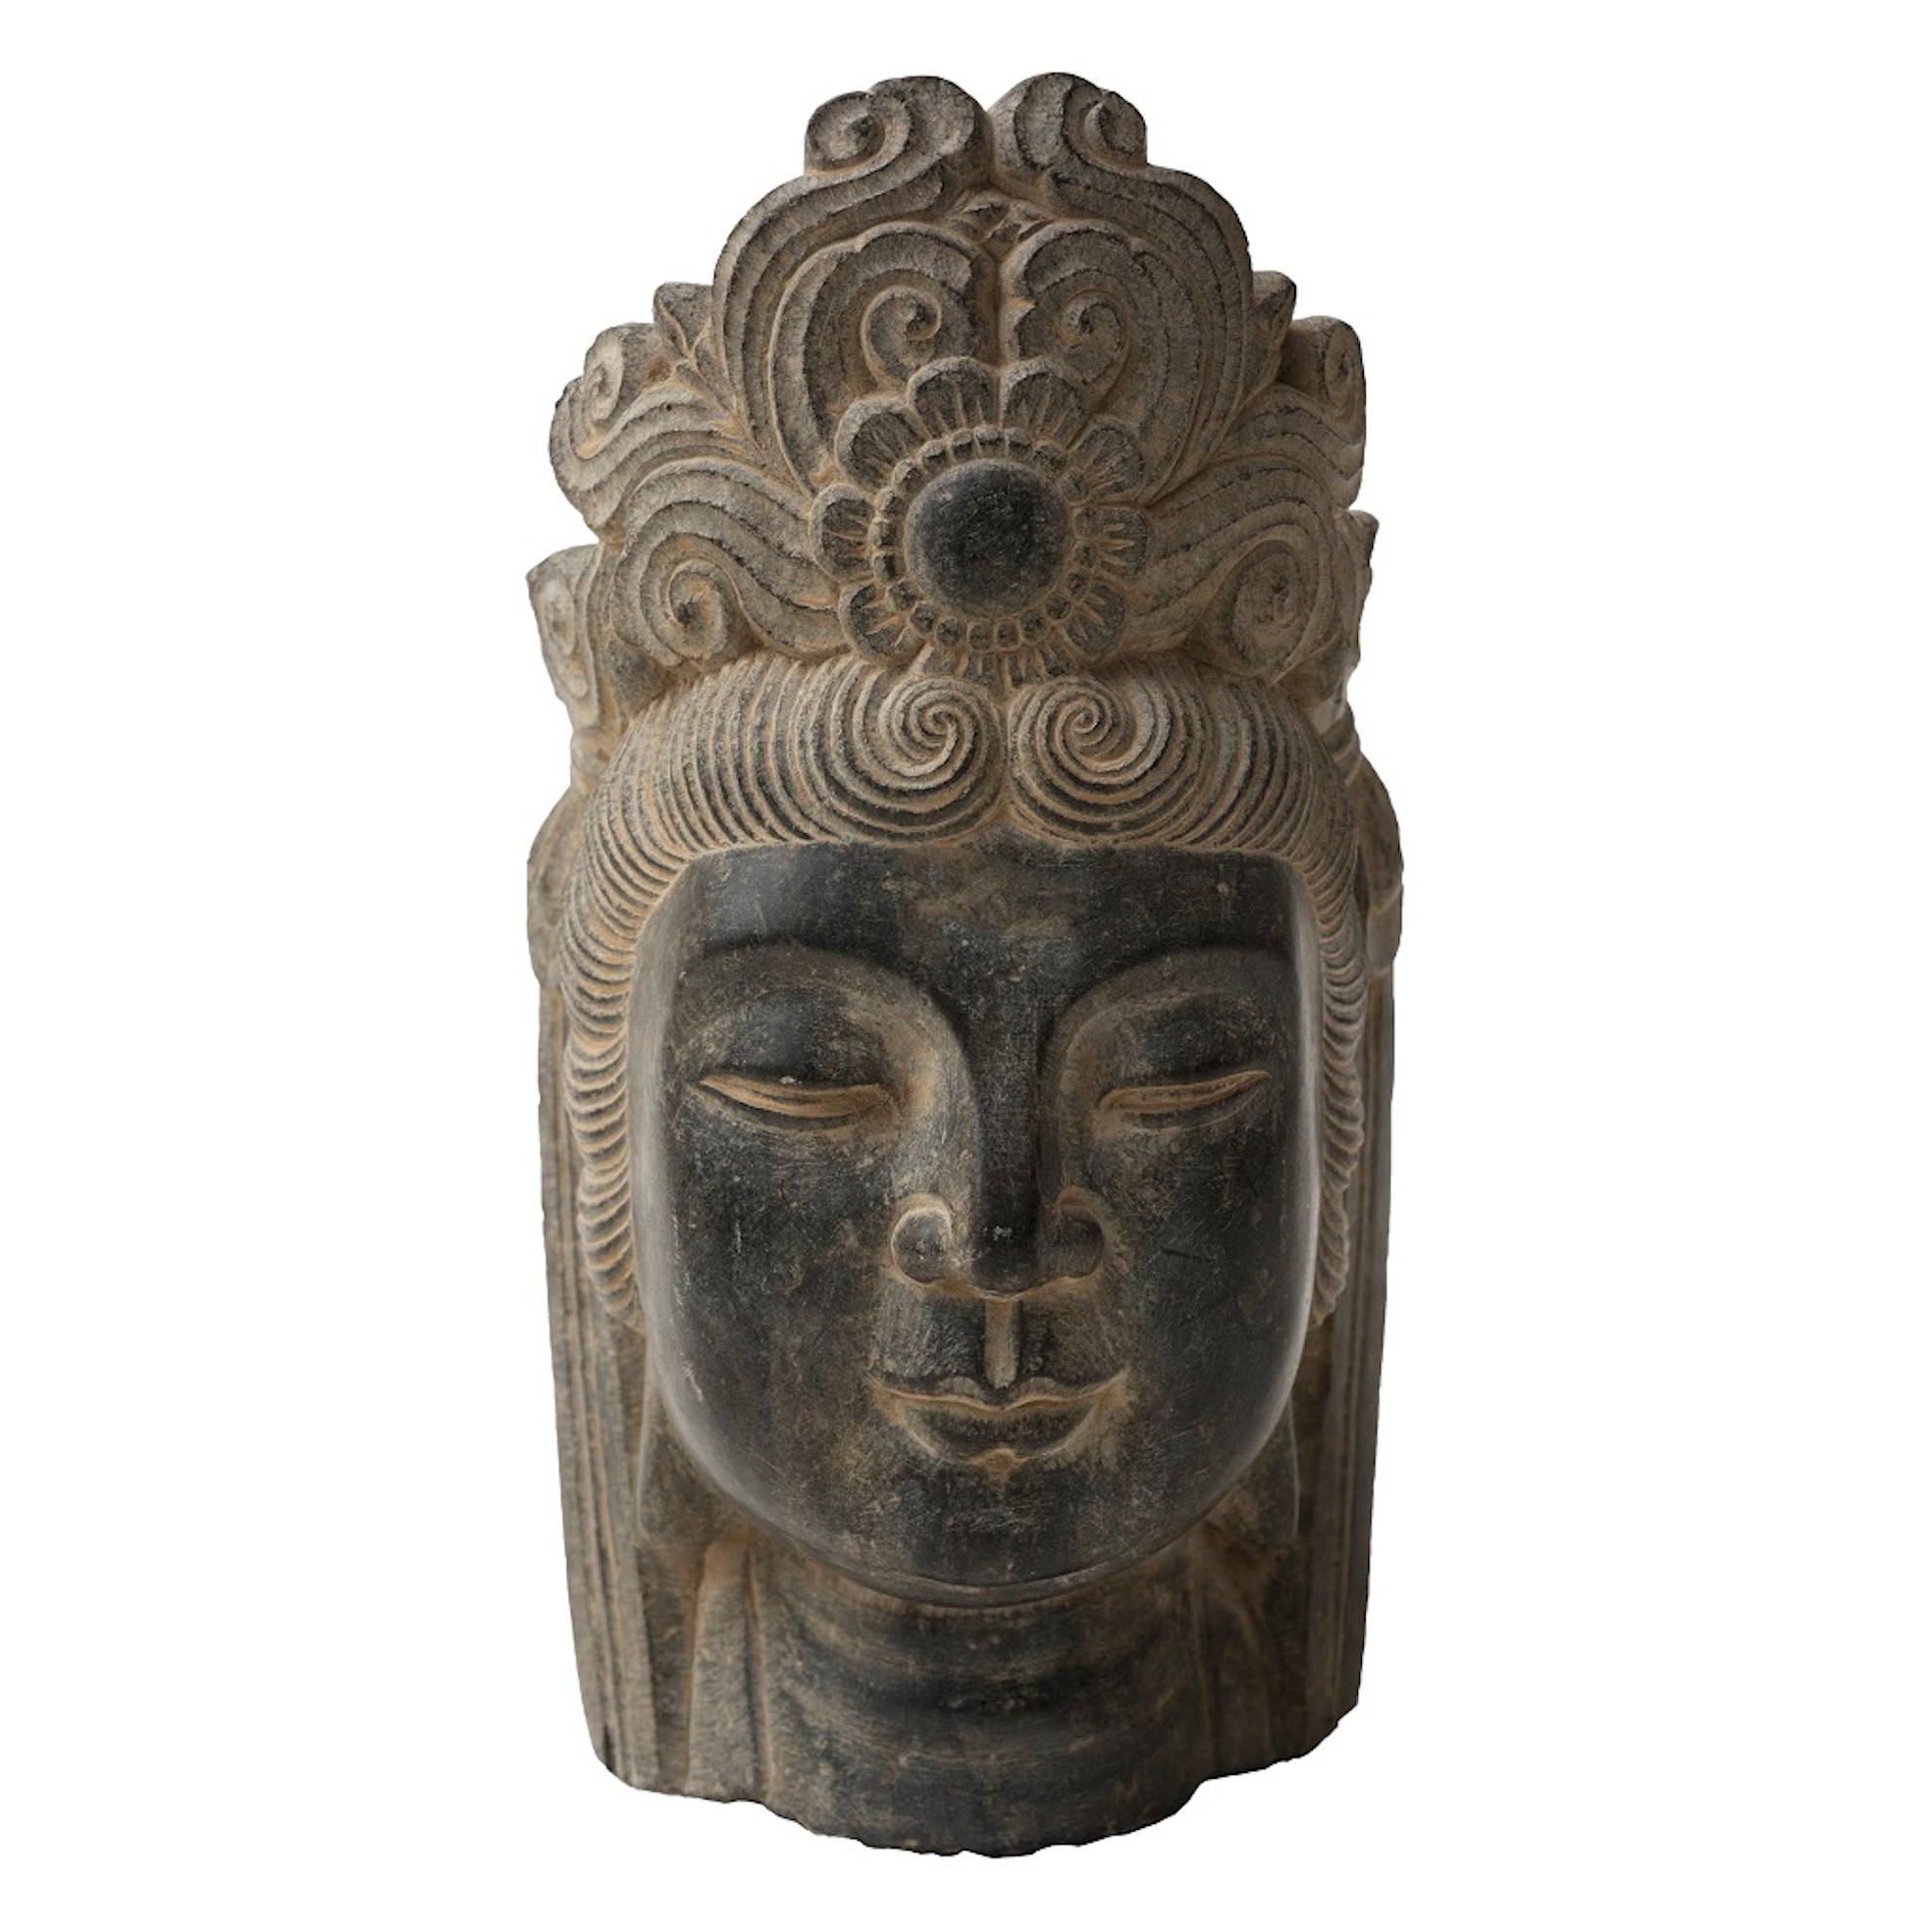 Head of Oriental Divinity, Vintage Stone Sculpture, Early 20th Century